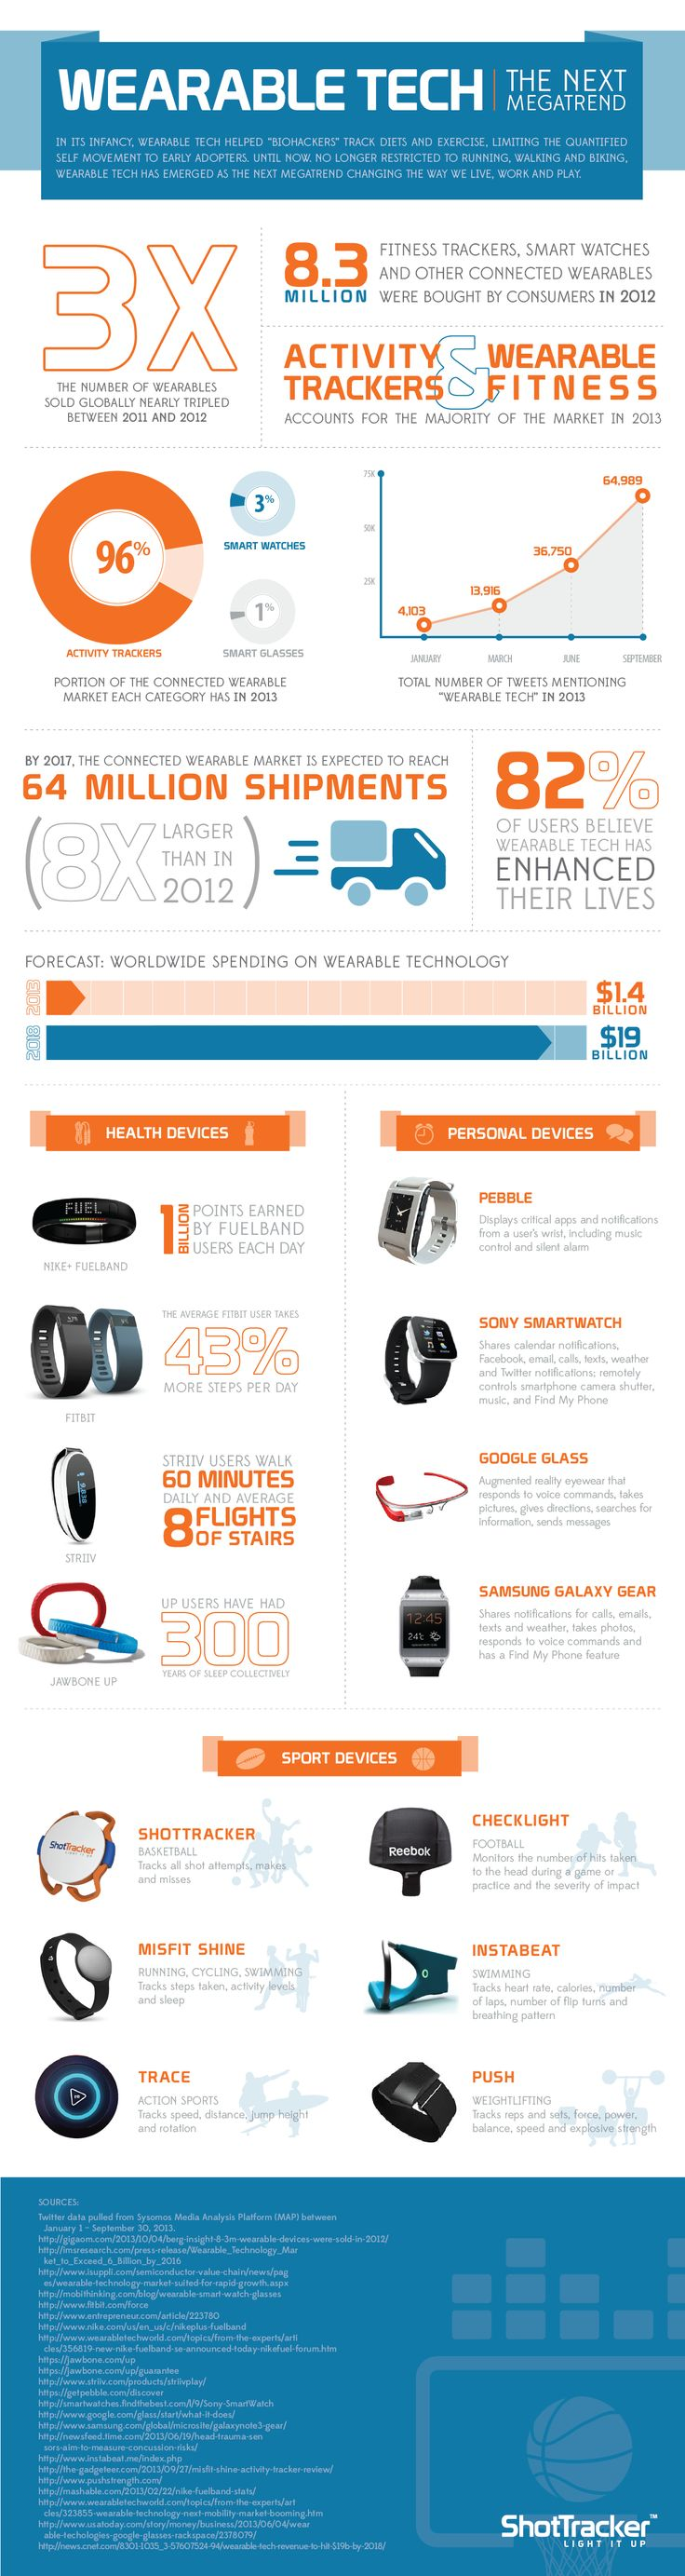 Wearable tech: the new megatrend #infographic